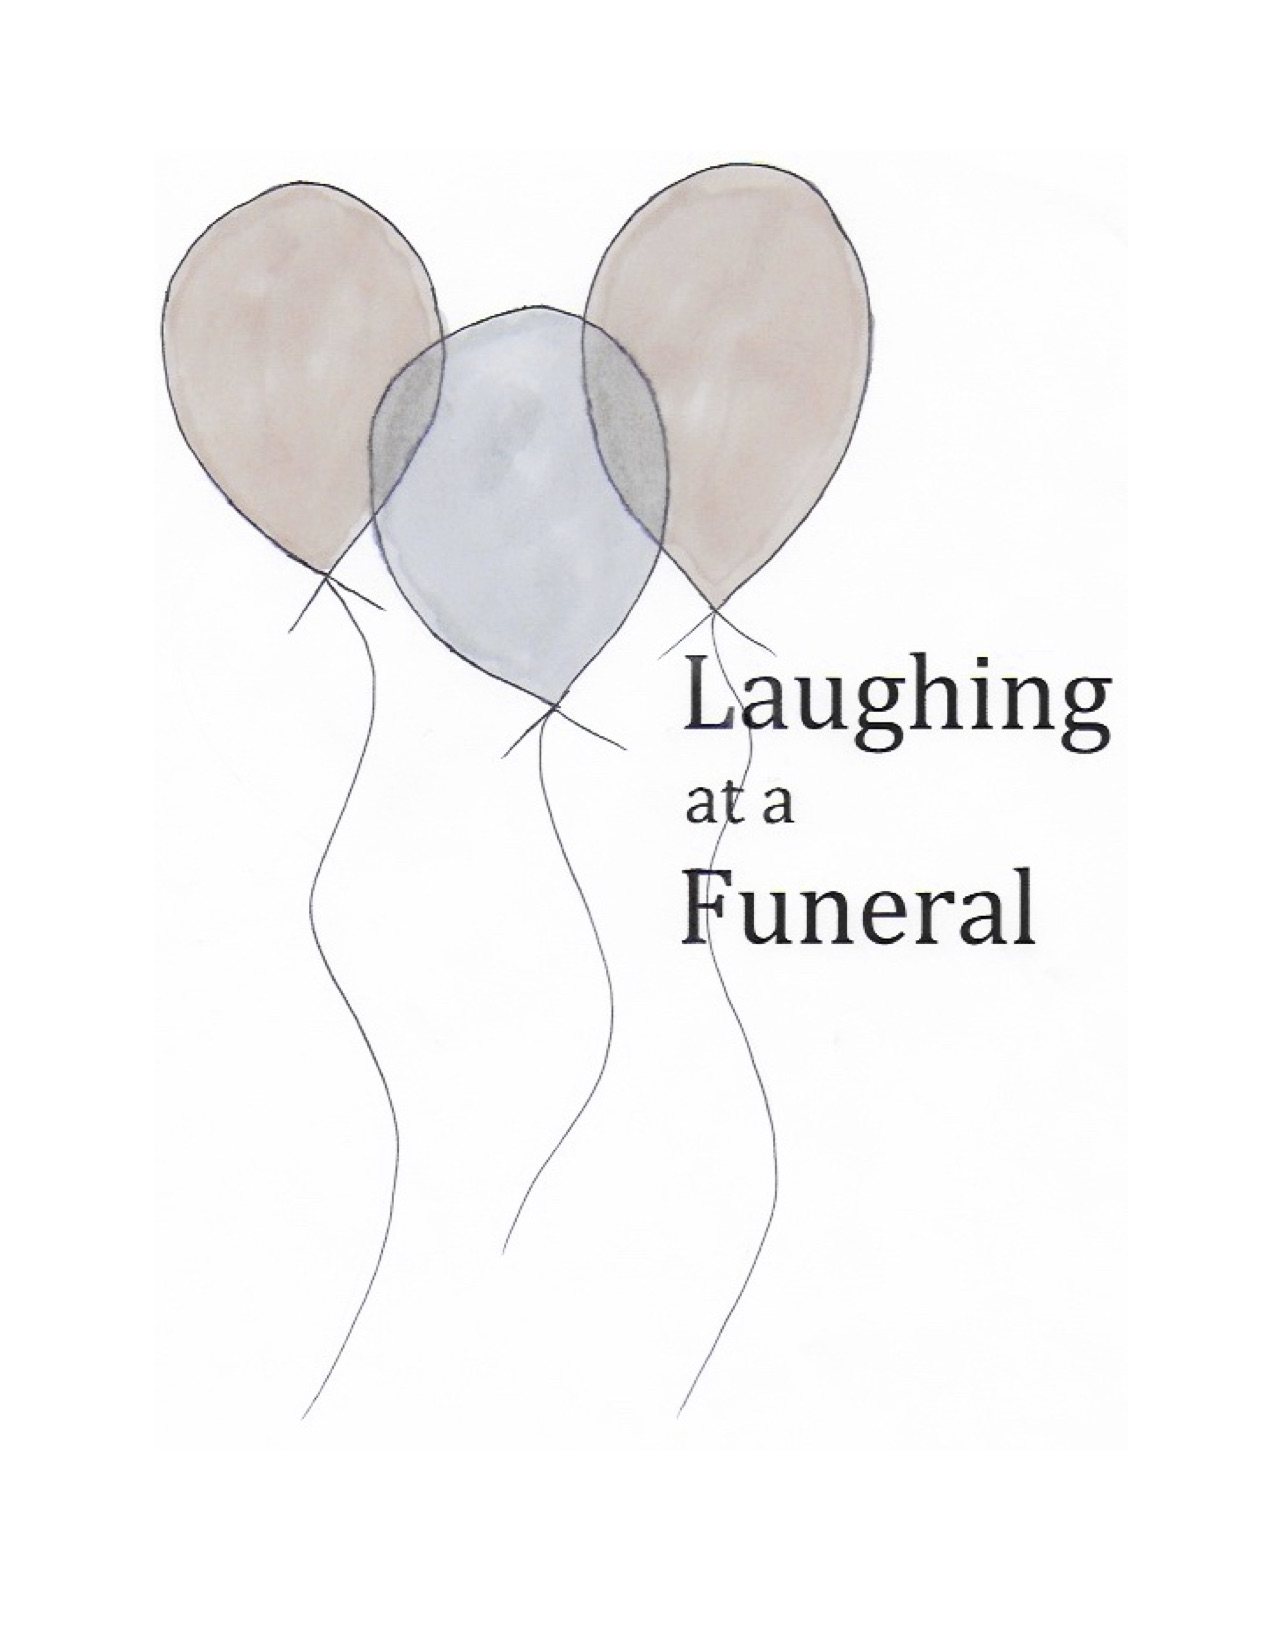 "Laughing at a Funeral - Laughing at a Funeral follows the story of Violet, a senior in high school who discovers a talent in an apathetic ability to tell people bad news. She thrives off of the satisfaction of telling the high and mighty ""popular kids"" that their cars have been totalled or their boyfriends are cheating on them. However, Violet's own heartbreak has lead her to these drastic and incomprehensible measures, which she begins using as a means to make money. Friends, family, and even strangers pay her to tell others the bad news they can't muster up the confidence to divulge themselves. This makes her happy, until she meets high school soccer star and class president Arlen James, her complete opposite. He is nice, friendly, likeable and involved in more lighthearted activities than she is. Having him as her lab partner changes her perspective in ways she never could have thought or is even comfortable with. Between him and her erratic friend Dio (chocolate addict and misinterpreted 'crazy person') Violet is being torn into the two halves of her personality. Does the view she has of herself—cynical beyond all repair—really reflect who she is? Is her sympathy towards Arlen a show of weakness? Or is life not so black and white after all? Violent begins to realize that high school is the worst time for a girl to uncover who she really is as a person."